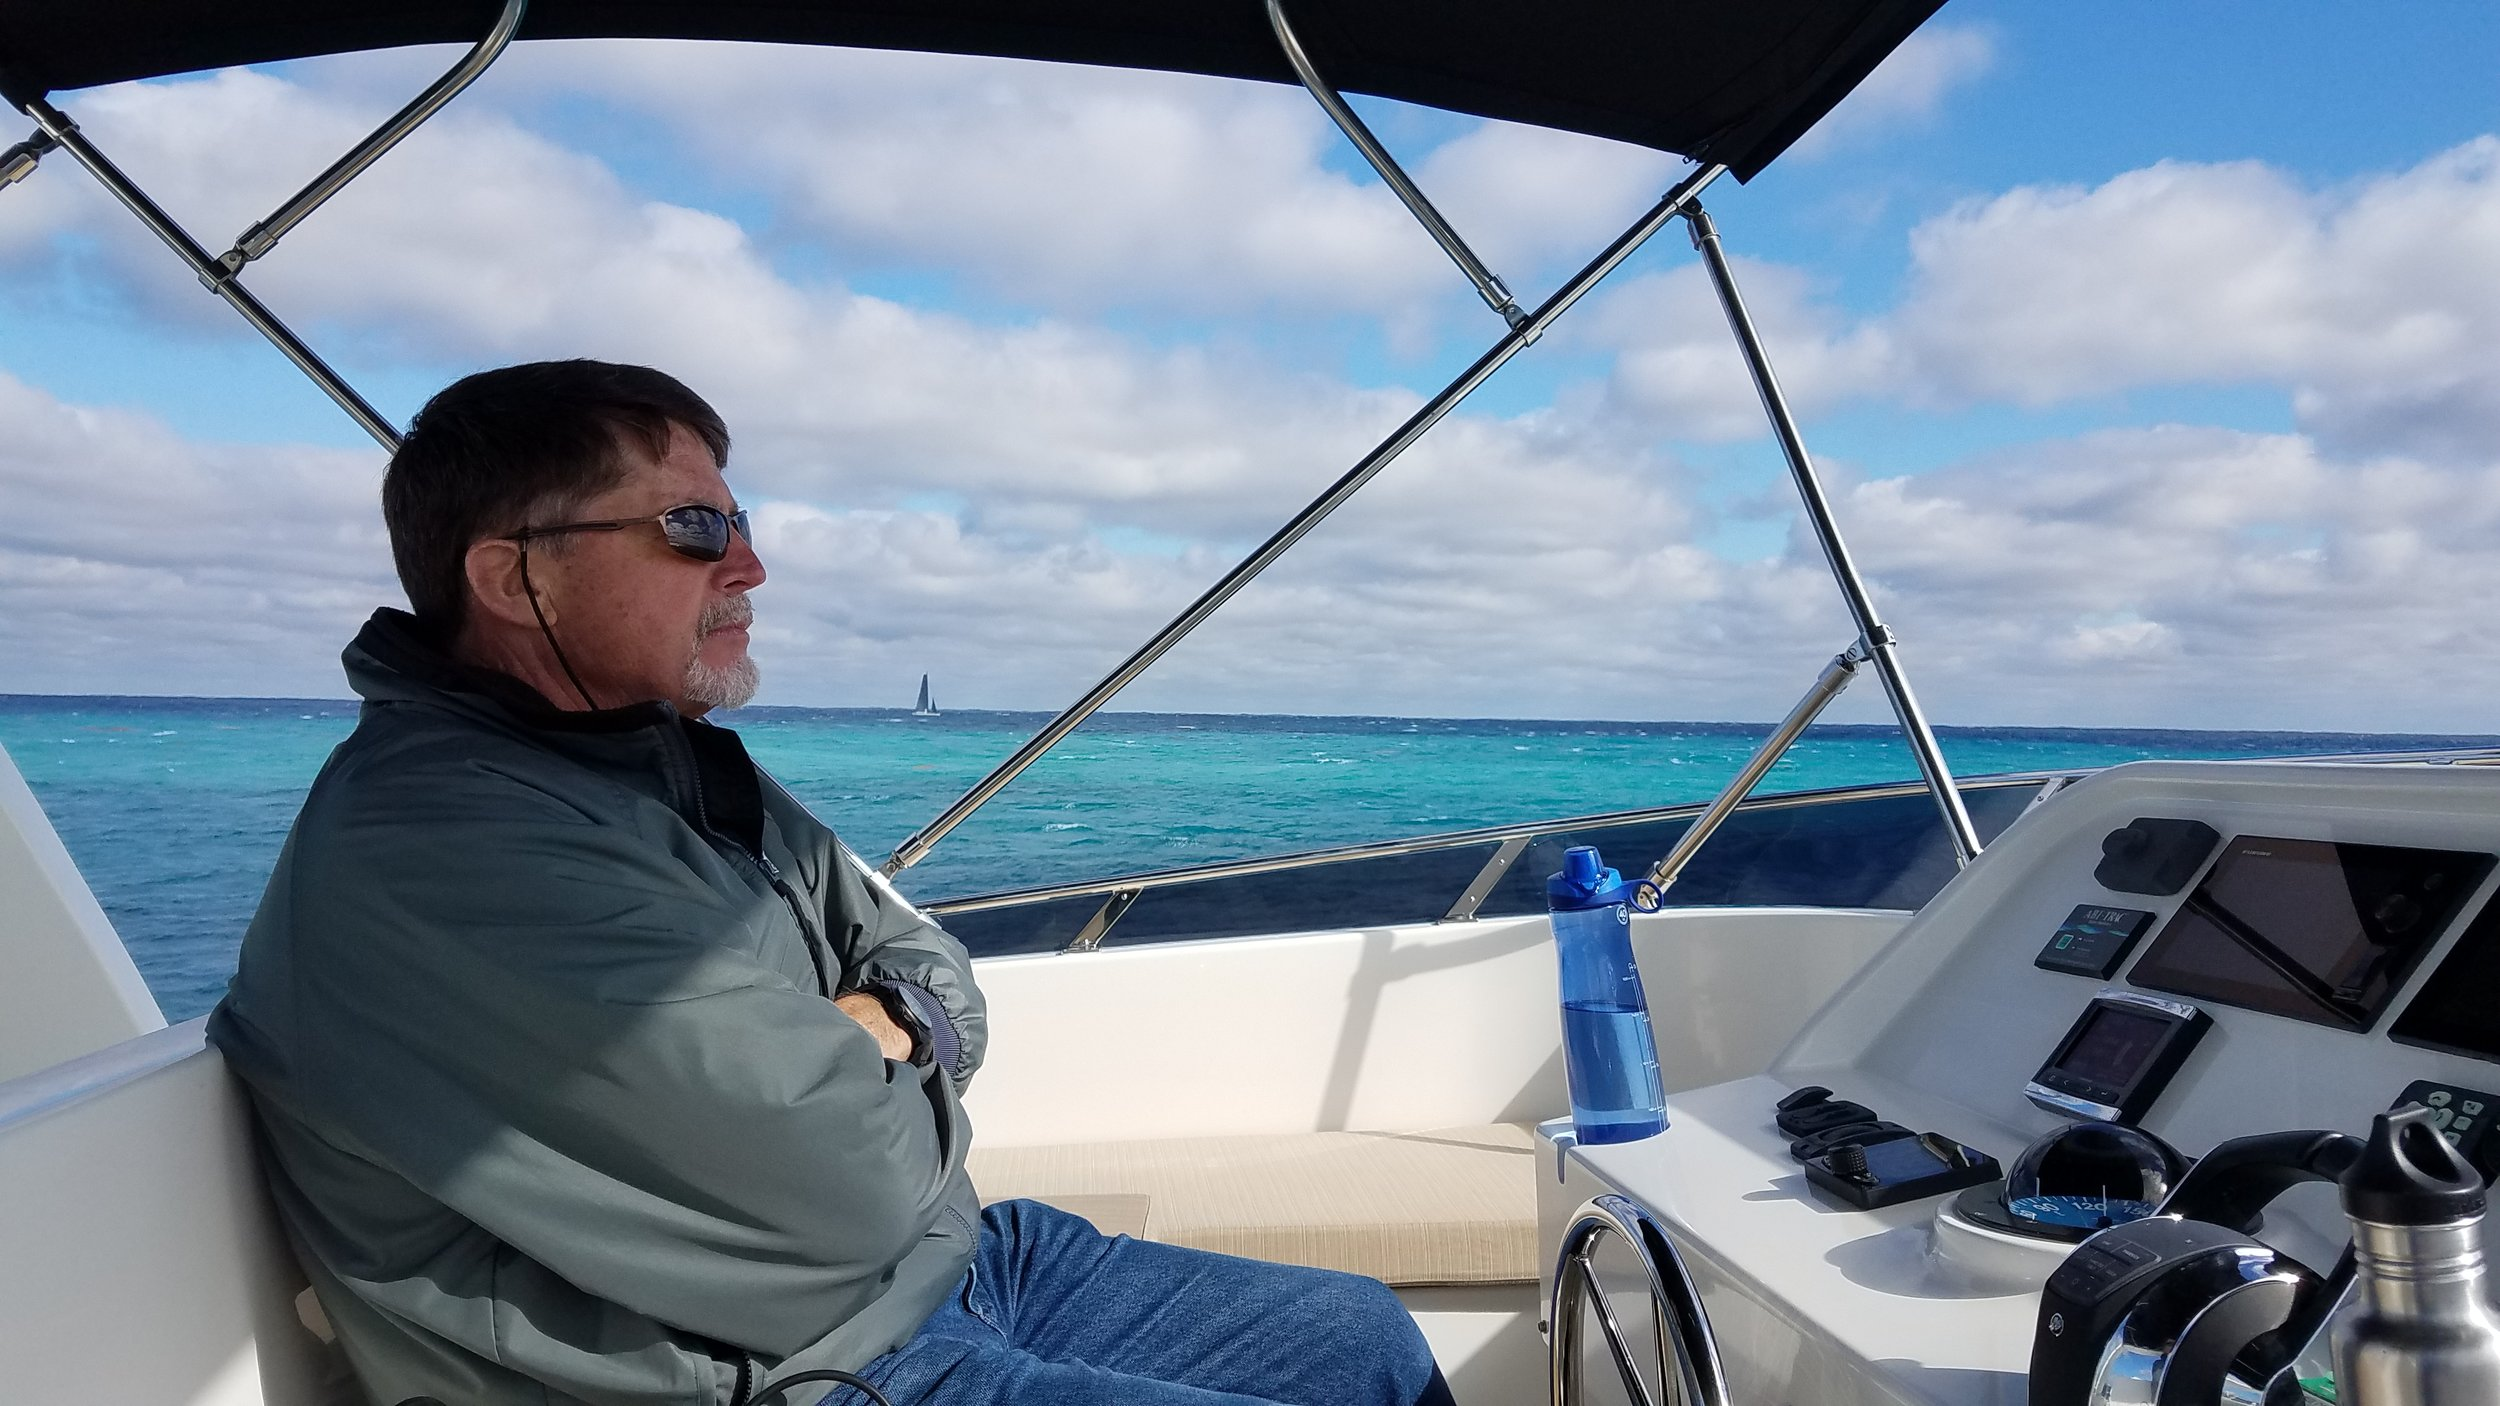 Seven foot swells look good on this guy…at least we had the auto-pilot that day on our way to Miami